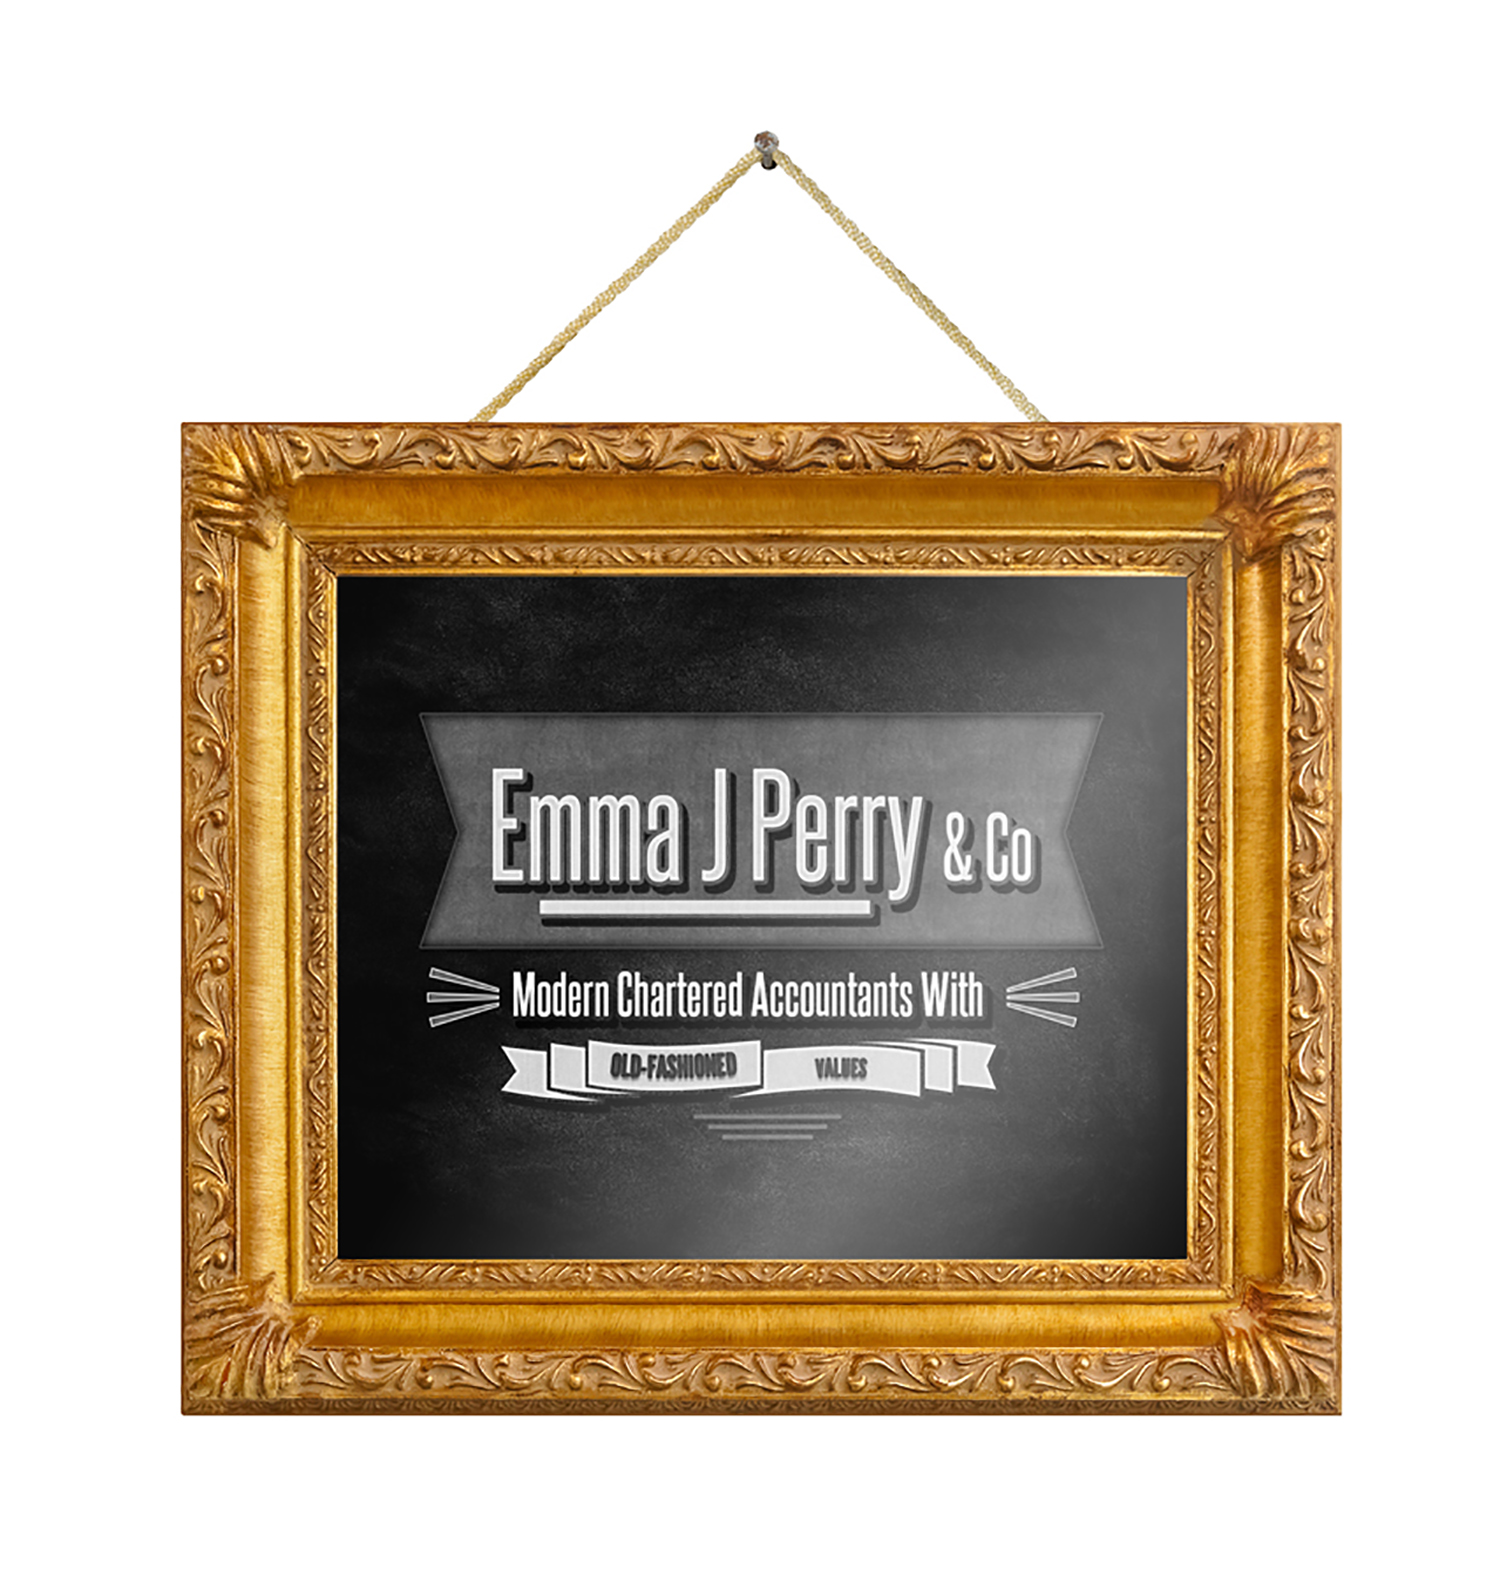 Emma J Perry & Co Chartered Accountants & Tax Specialists